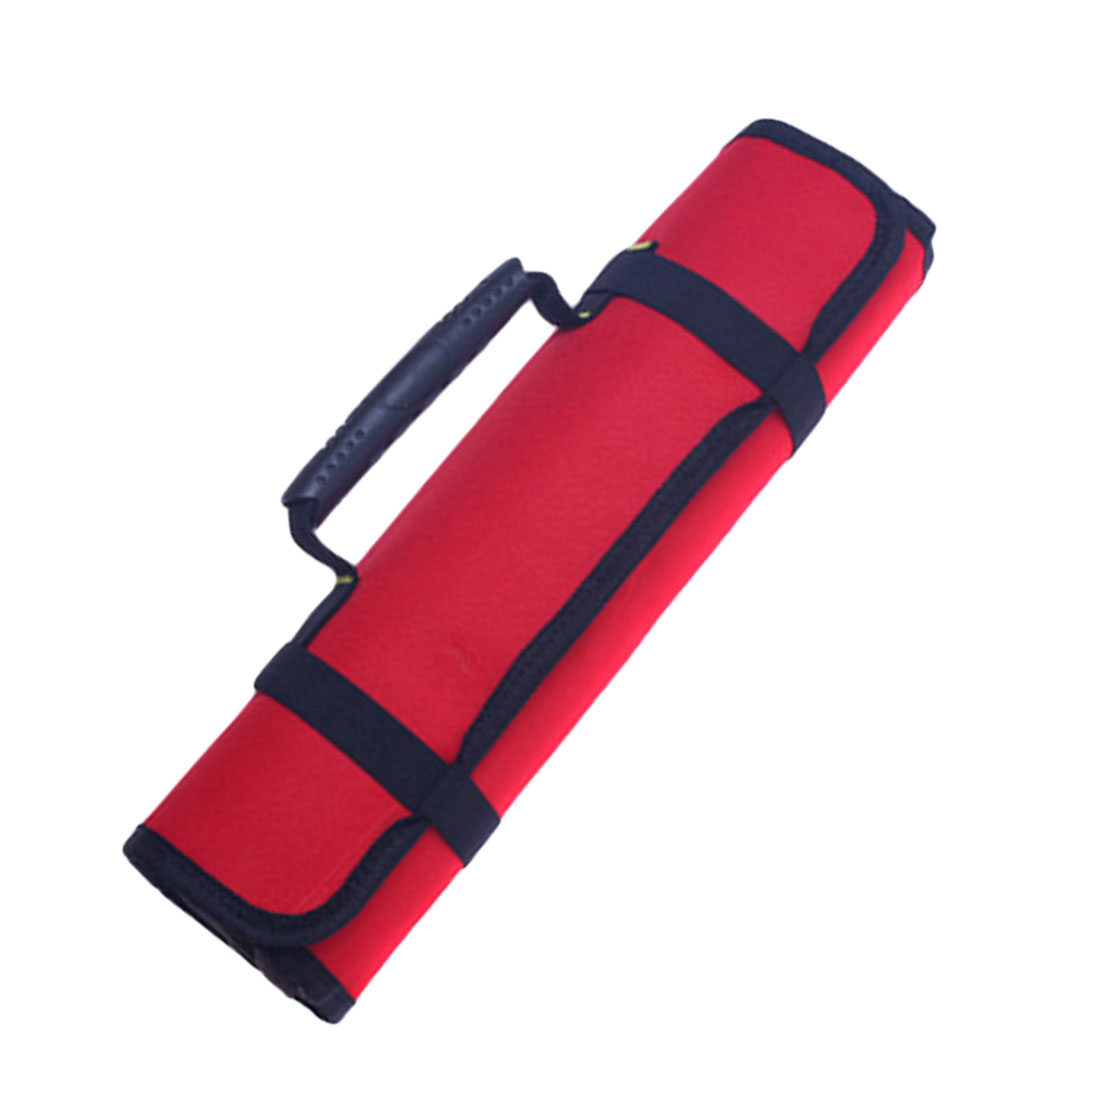 Roll Bag Tool Multifunction Tool Bag Practical Carrying Handles Oxford Canvas Wrench Storage Instrument Case 585mm X 355mm